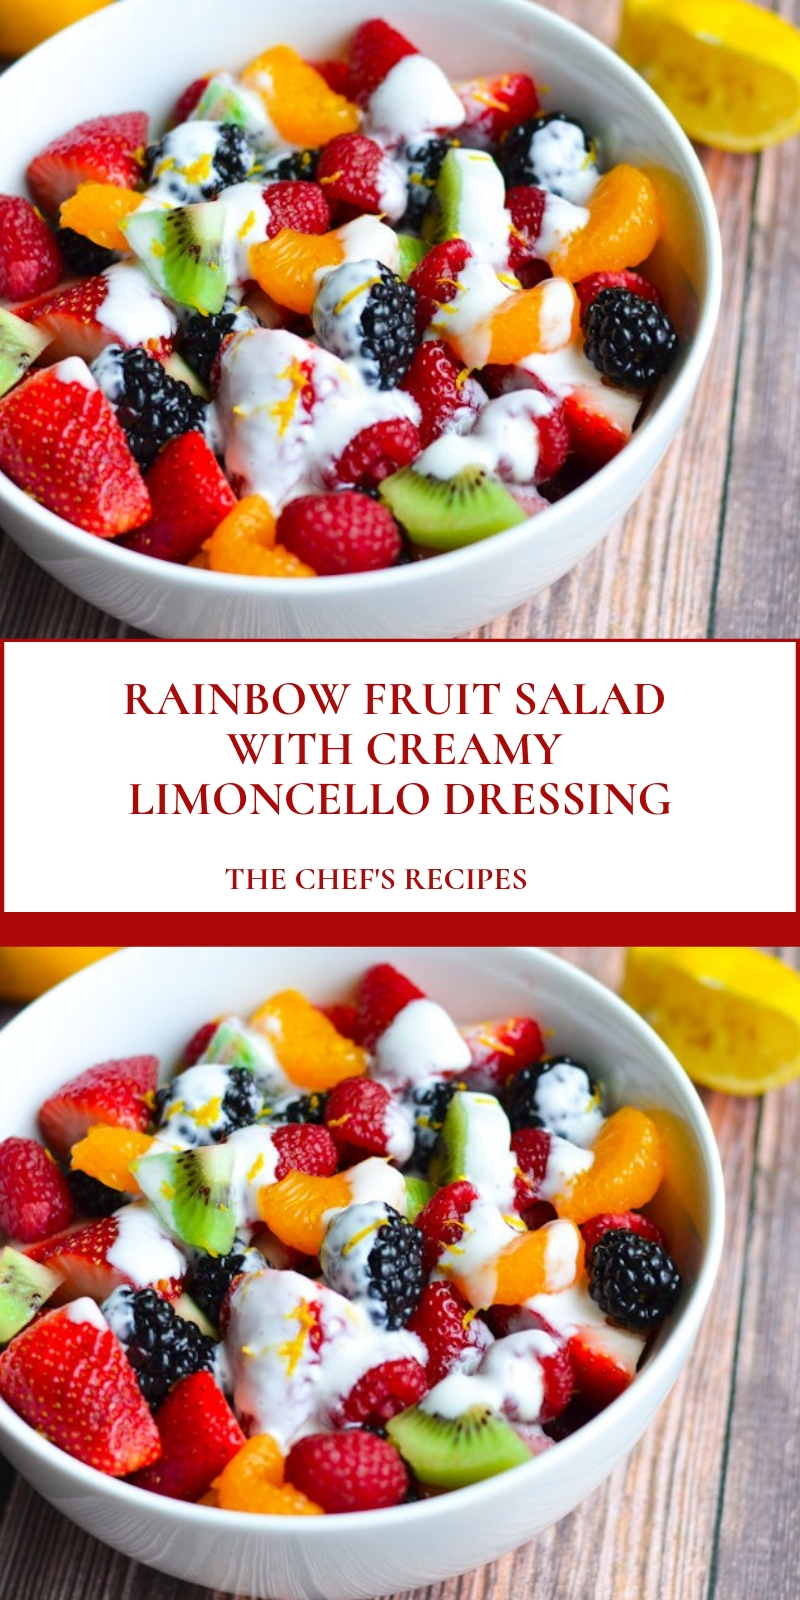 RAINBOW FRUIT SALAD WITH CREAMY LIMONCELLO DRESSING